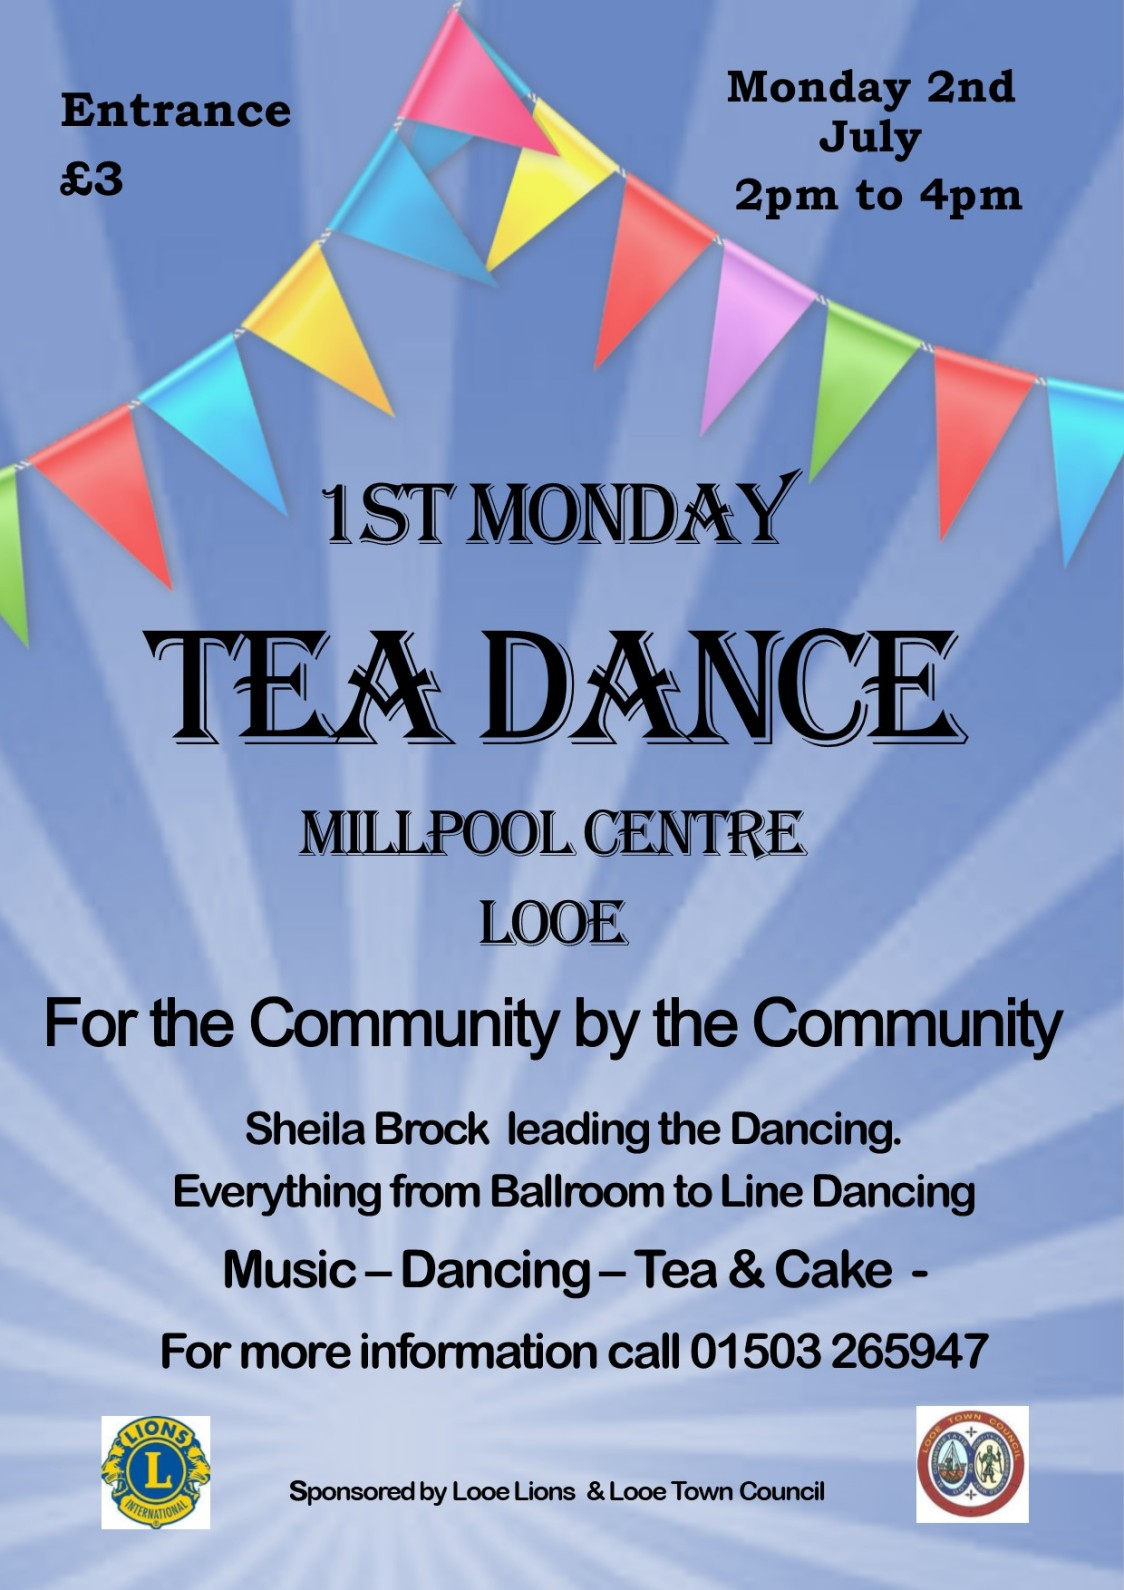 2nd July 1st Monday Tea Dance